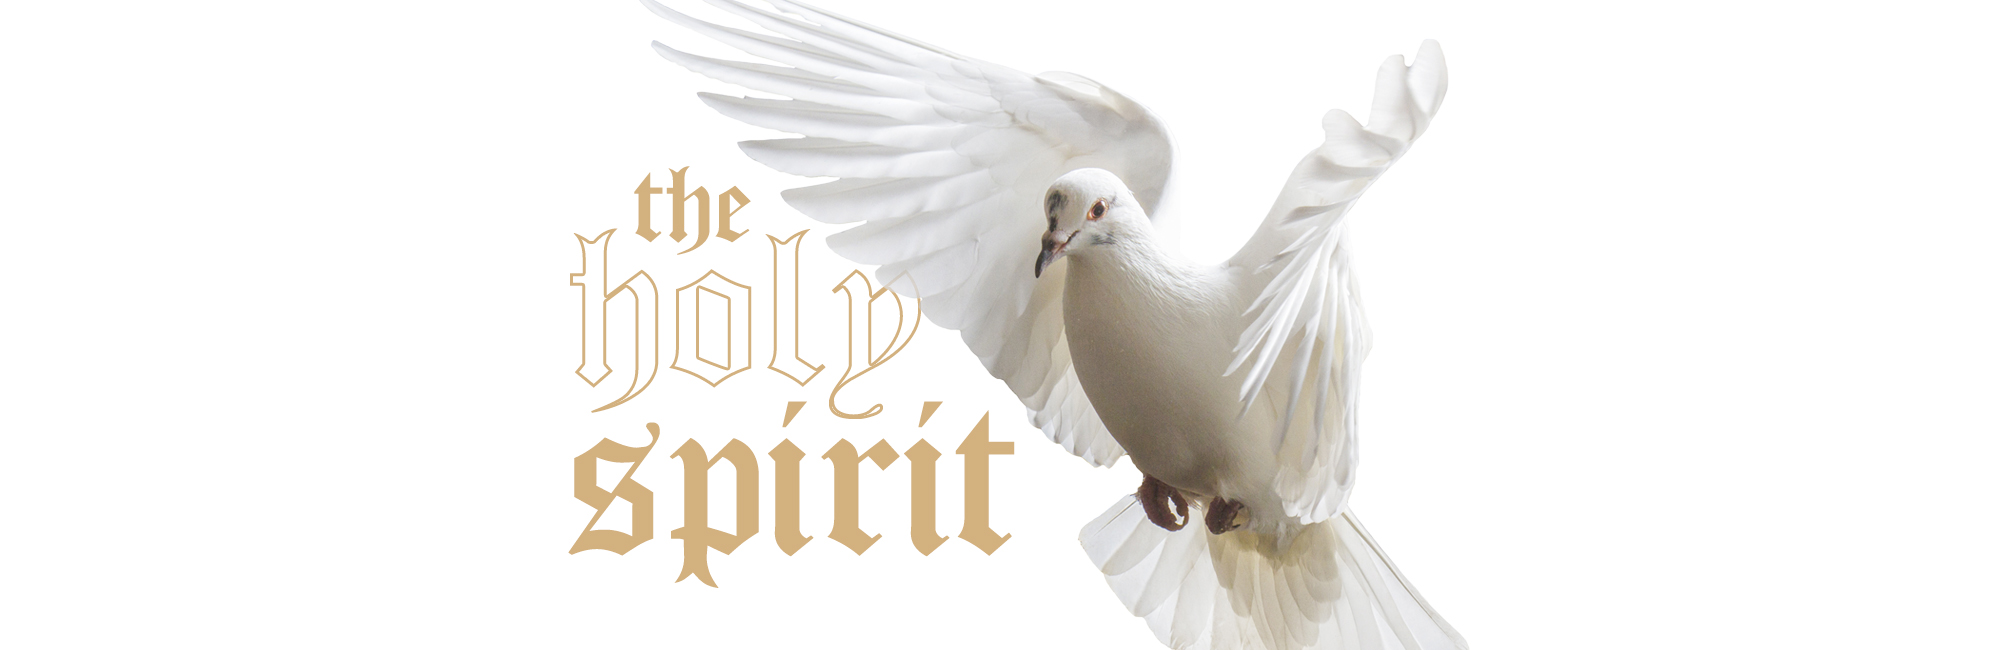 The Holy Spirit - Web - Message Header